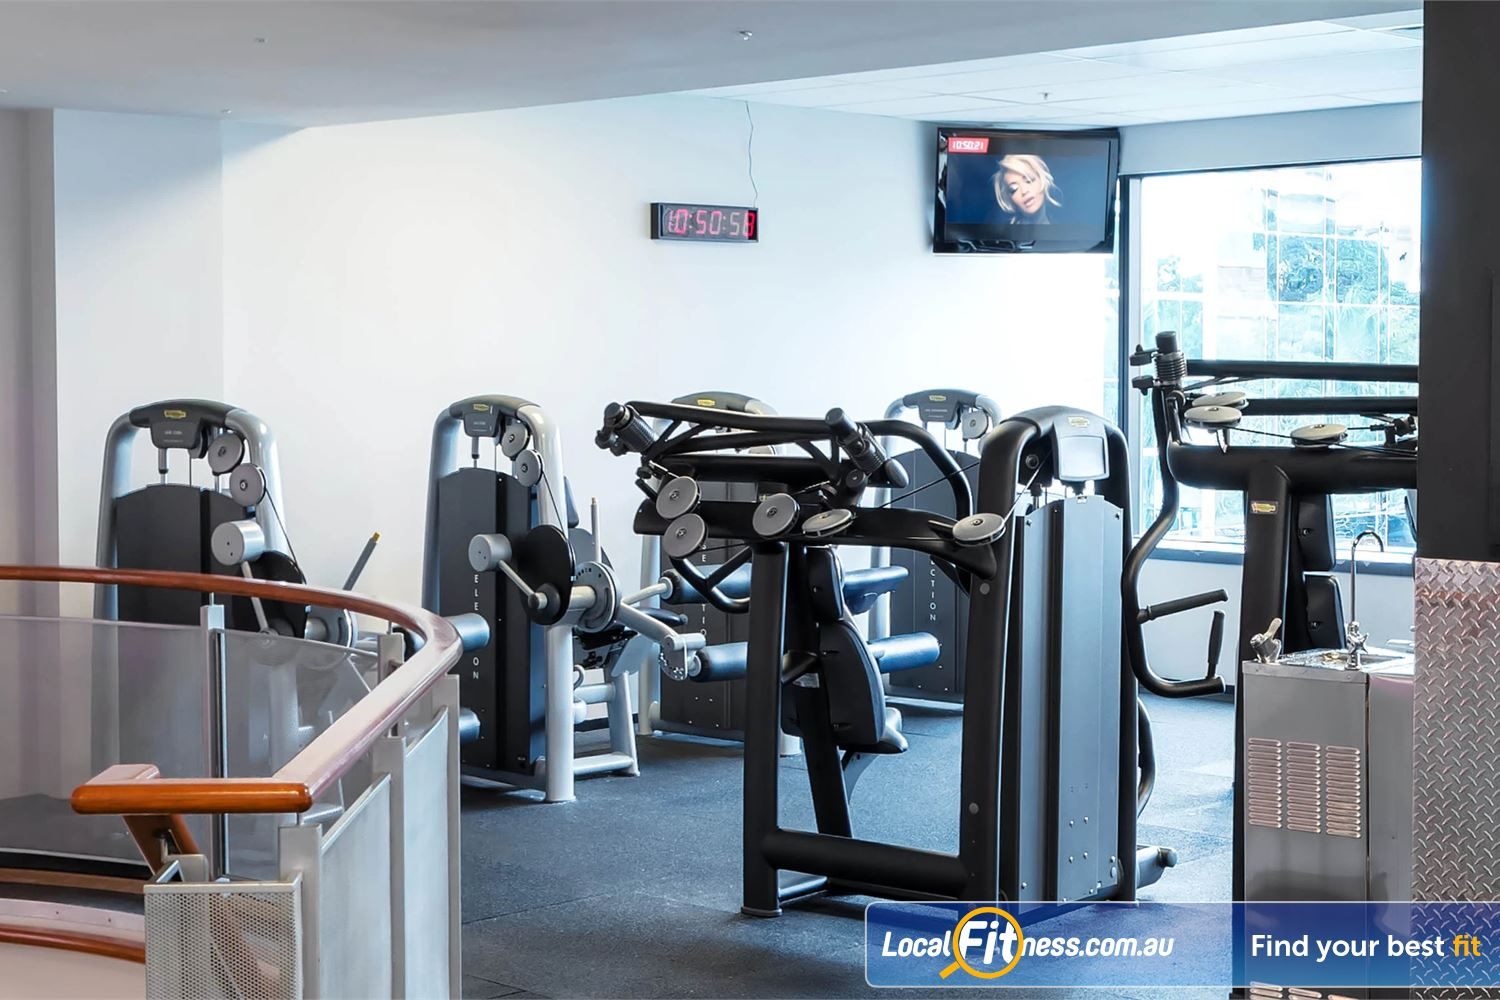 Fitness First Elizabeth Plaza Near Milsons Point Our North Sydney gym includes state of the art Technogym equipment.